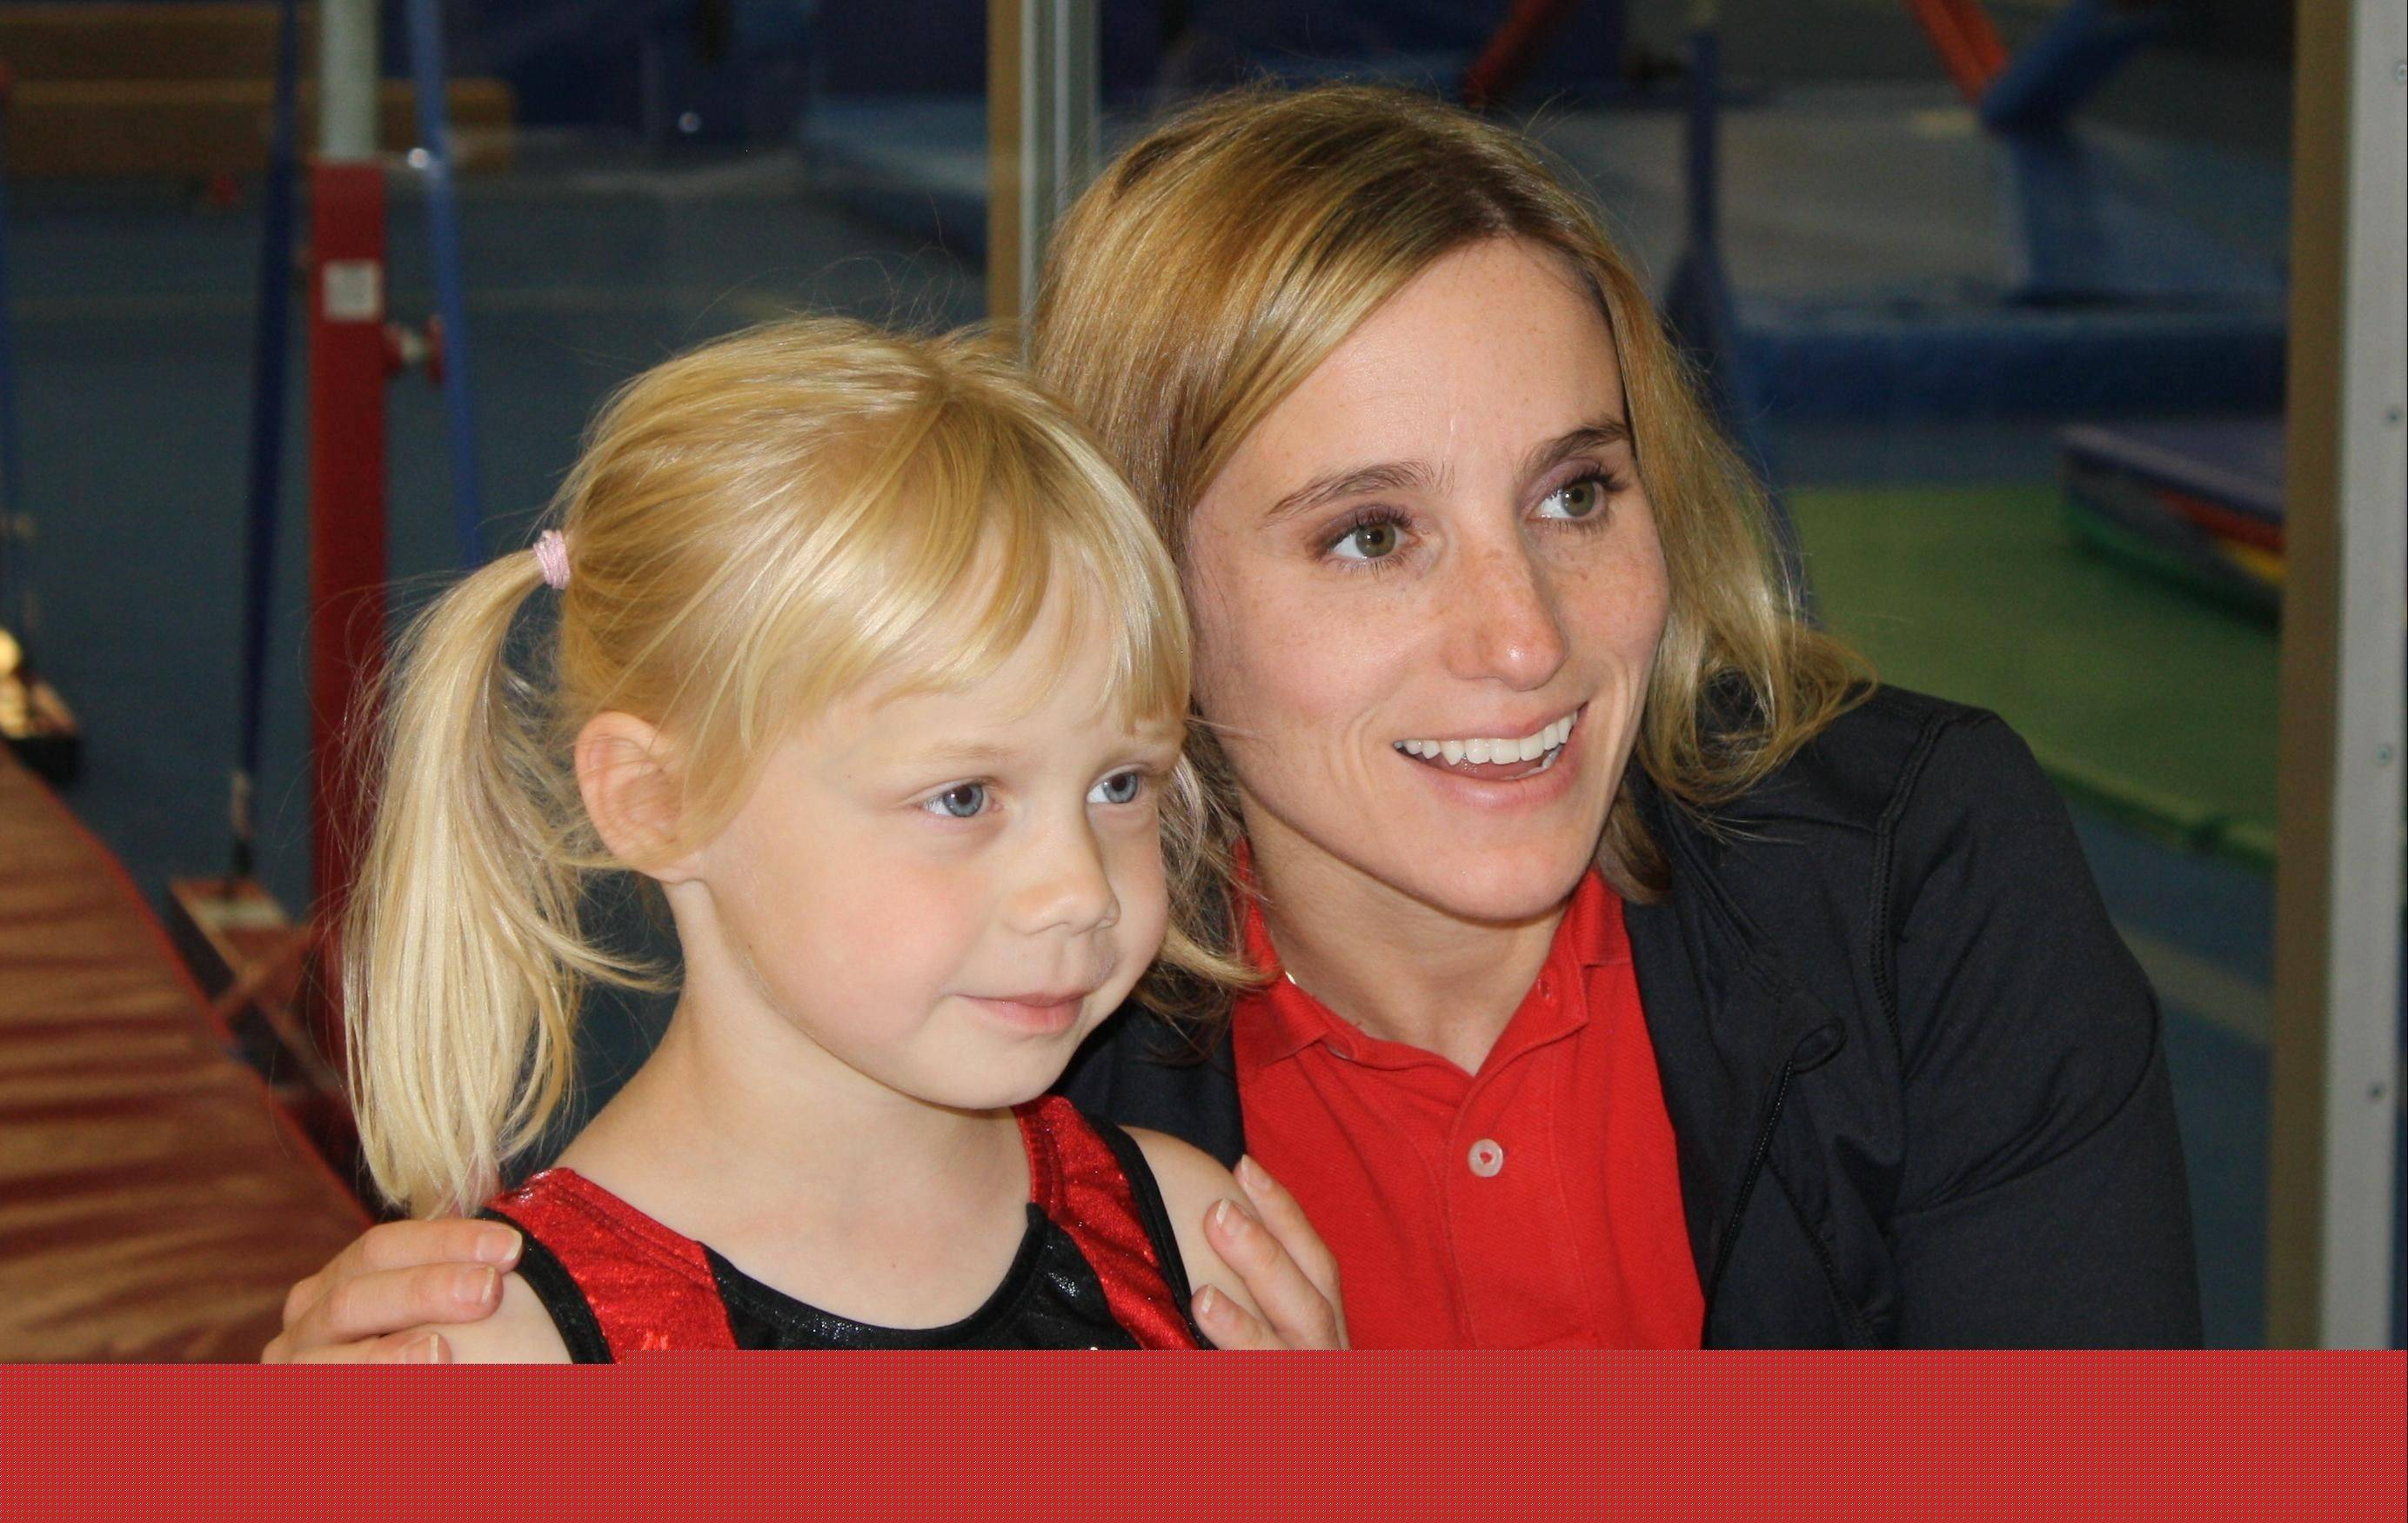 Young Gracie Donnelly, a gymnast at Midwest Elite Gymnastics Academy in Elgin, got to meet U.S. Olympic gold medalist gymnast Kerri Strug on Friday. Strug was promoting the final qualifying event for the U.S. Gymnastics Championships.